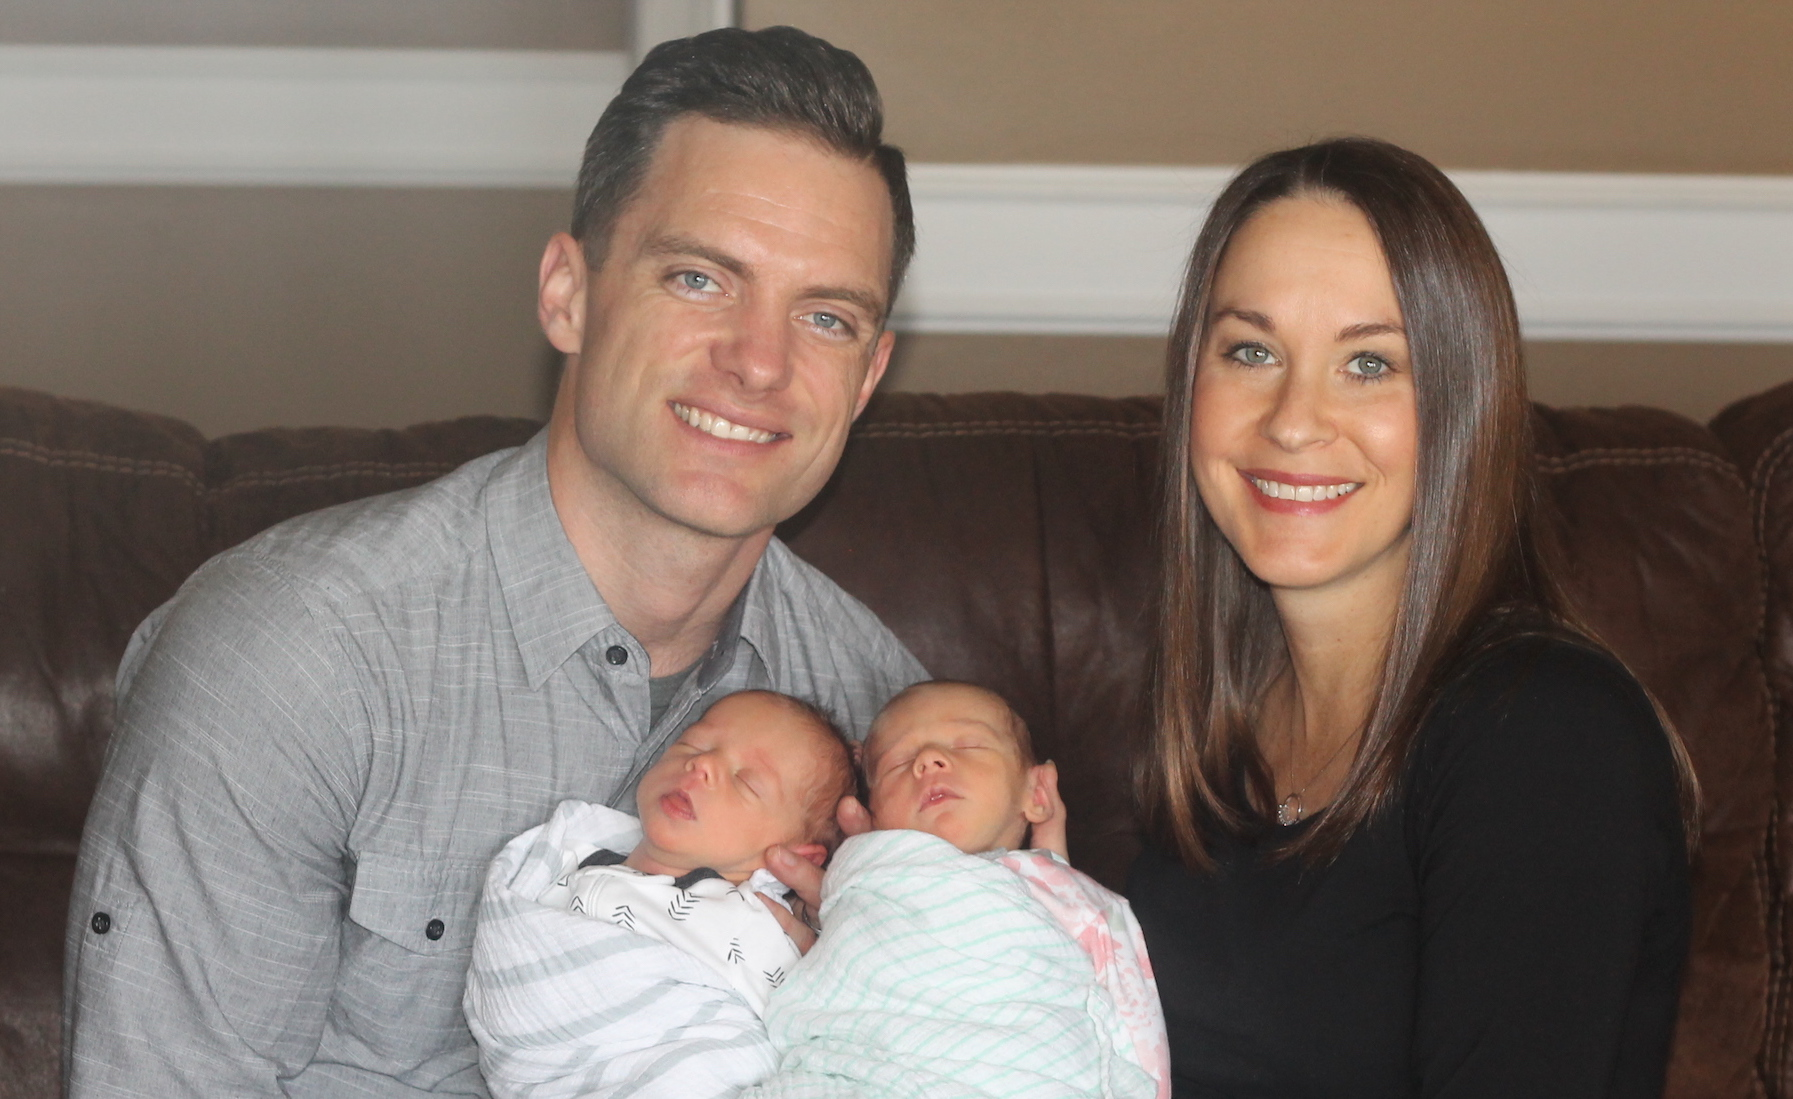 CANTON JUNCTION'S CASEY RIVERS WELCOMES TWINS